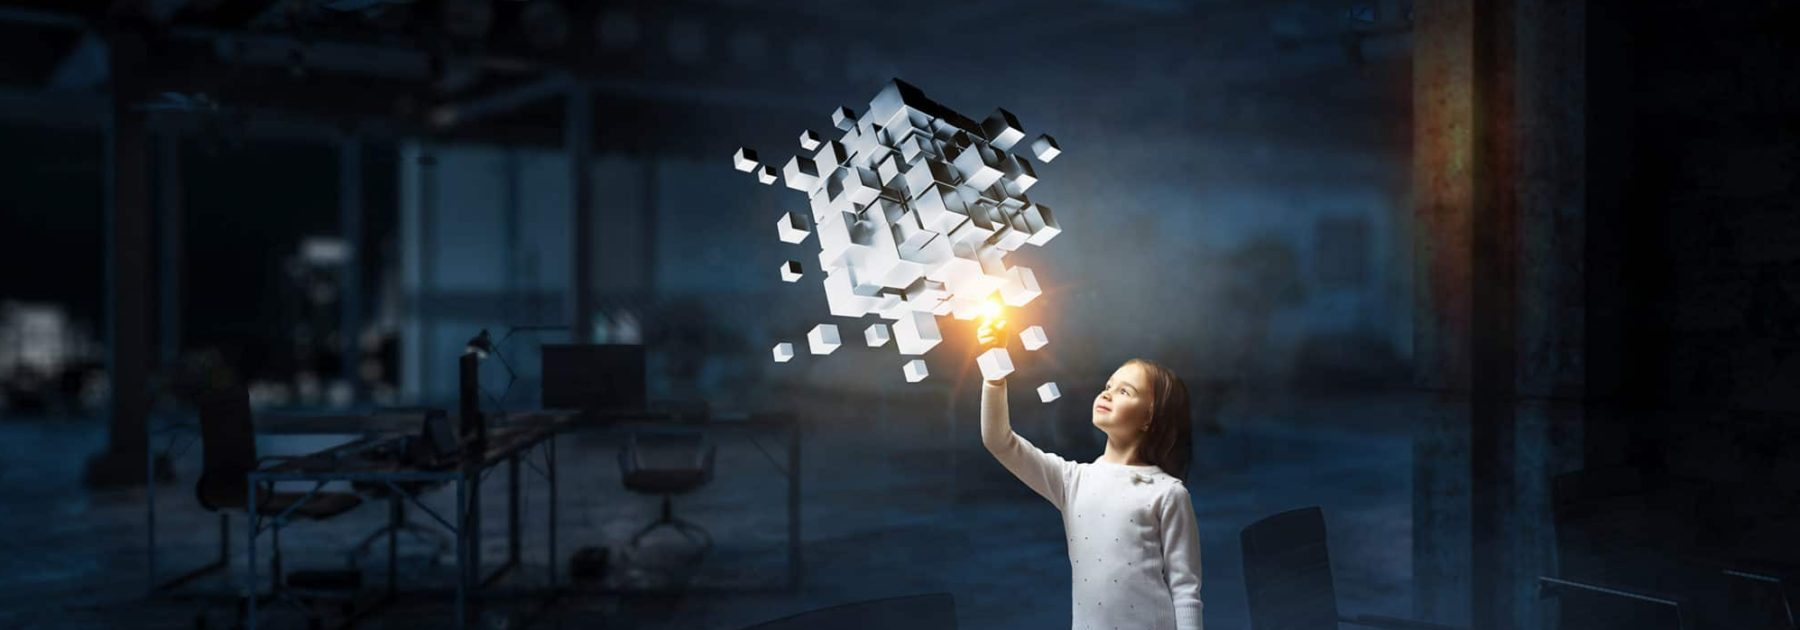 Education Evolution: Redefining the Future of Learning